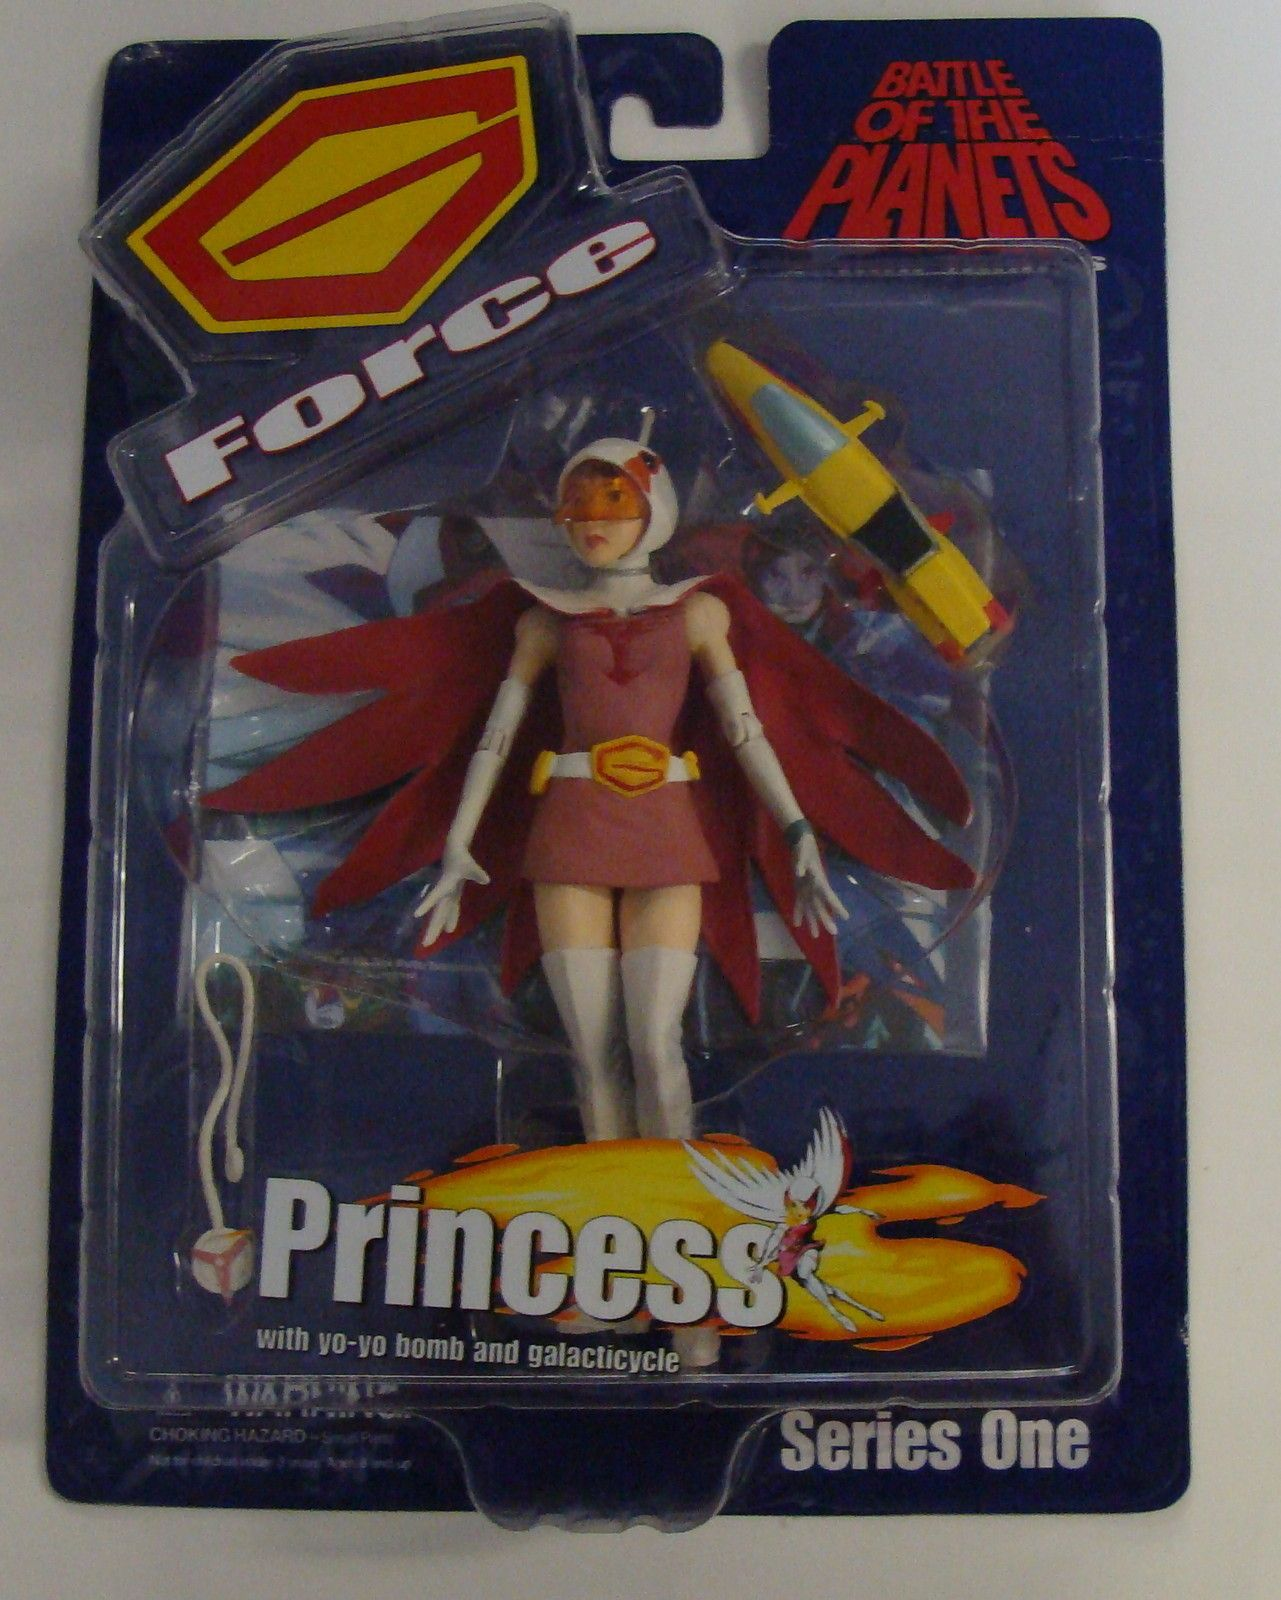 Princess Series 1 Battle of the Planets G-Force Gatchaman 2002 Diamond Select | eBay